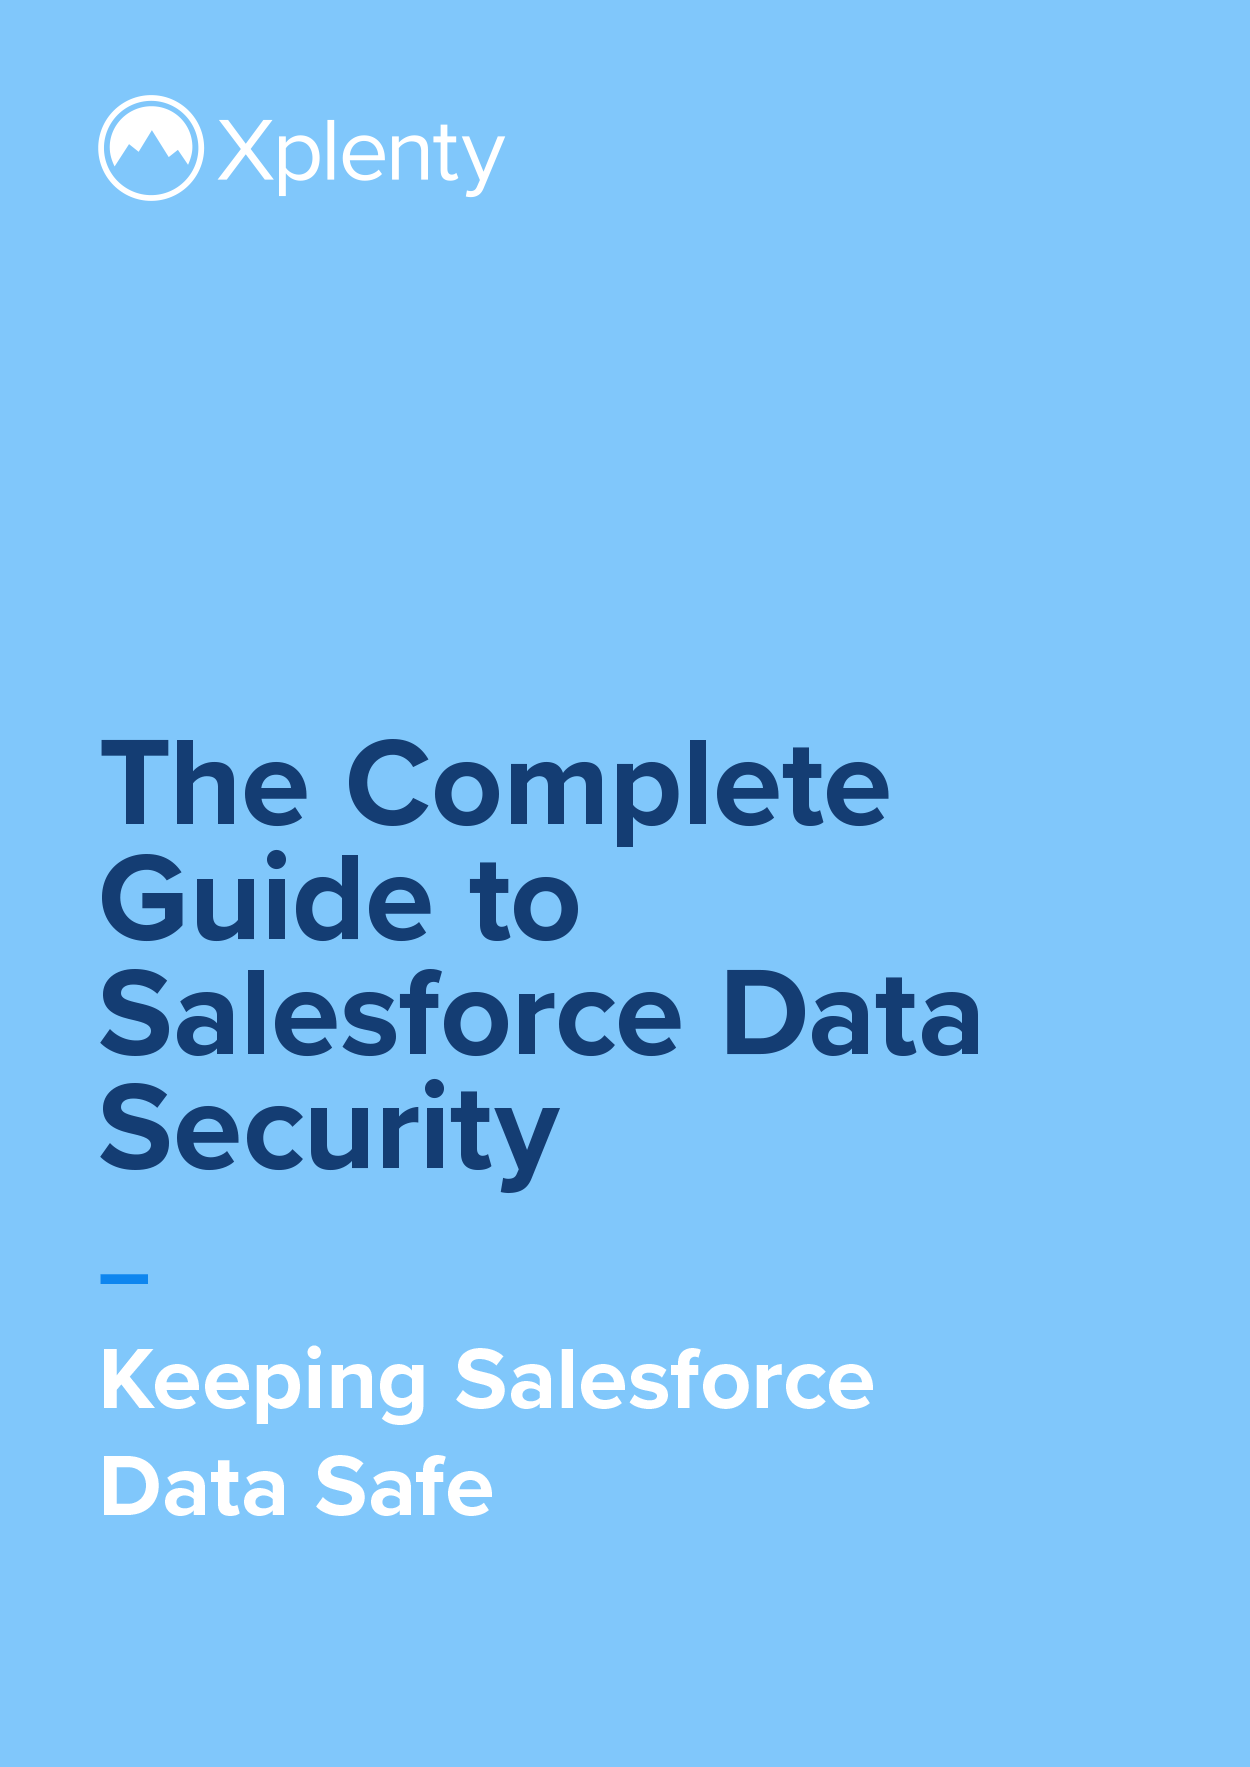 The Complete Guide to Salesforce Data Security